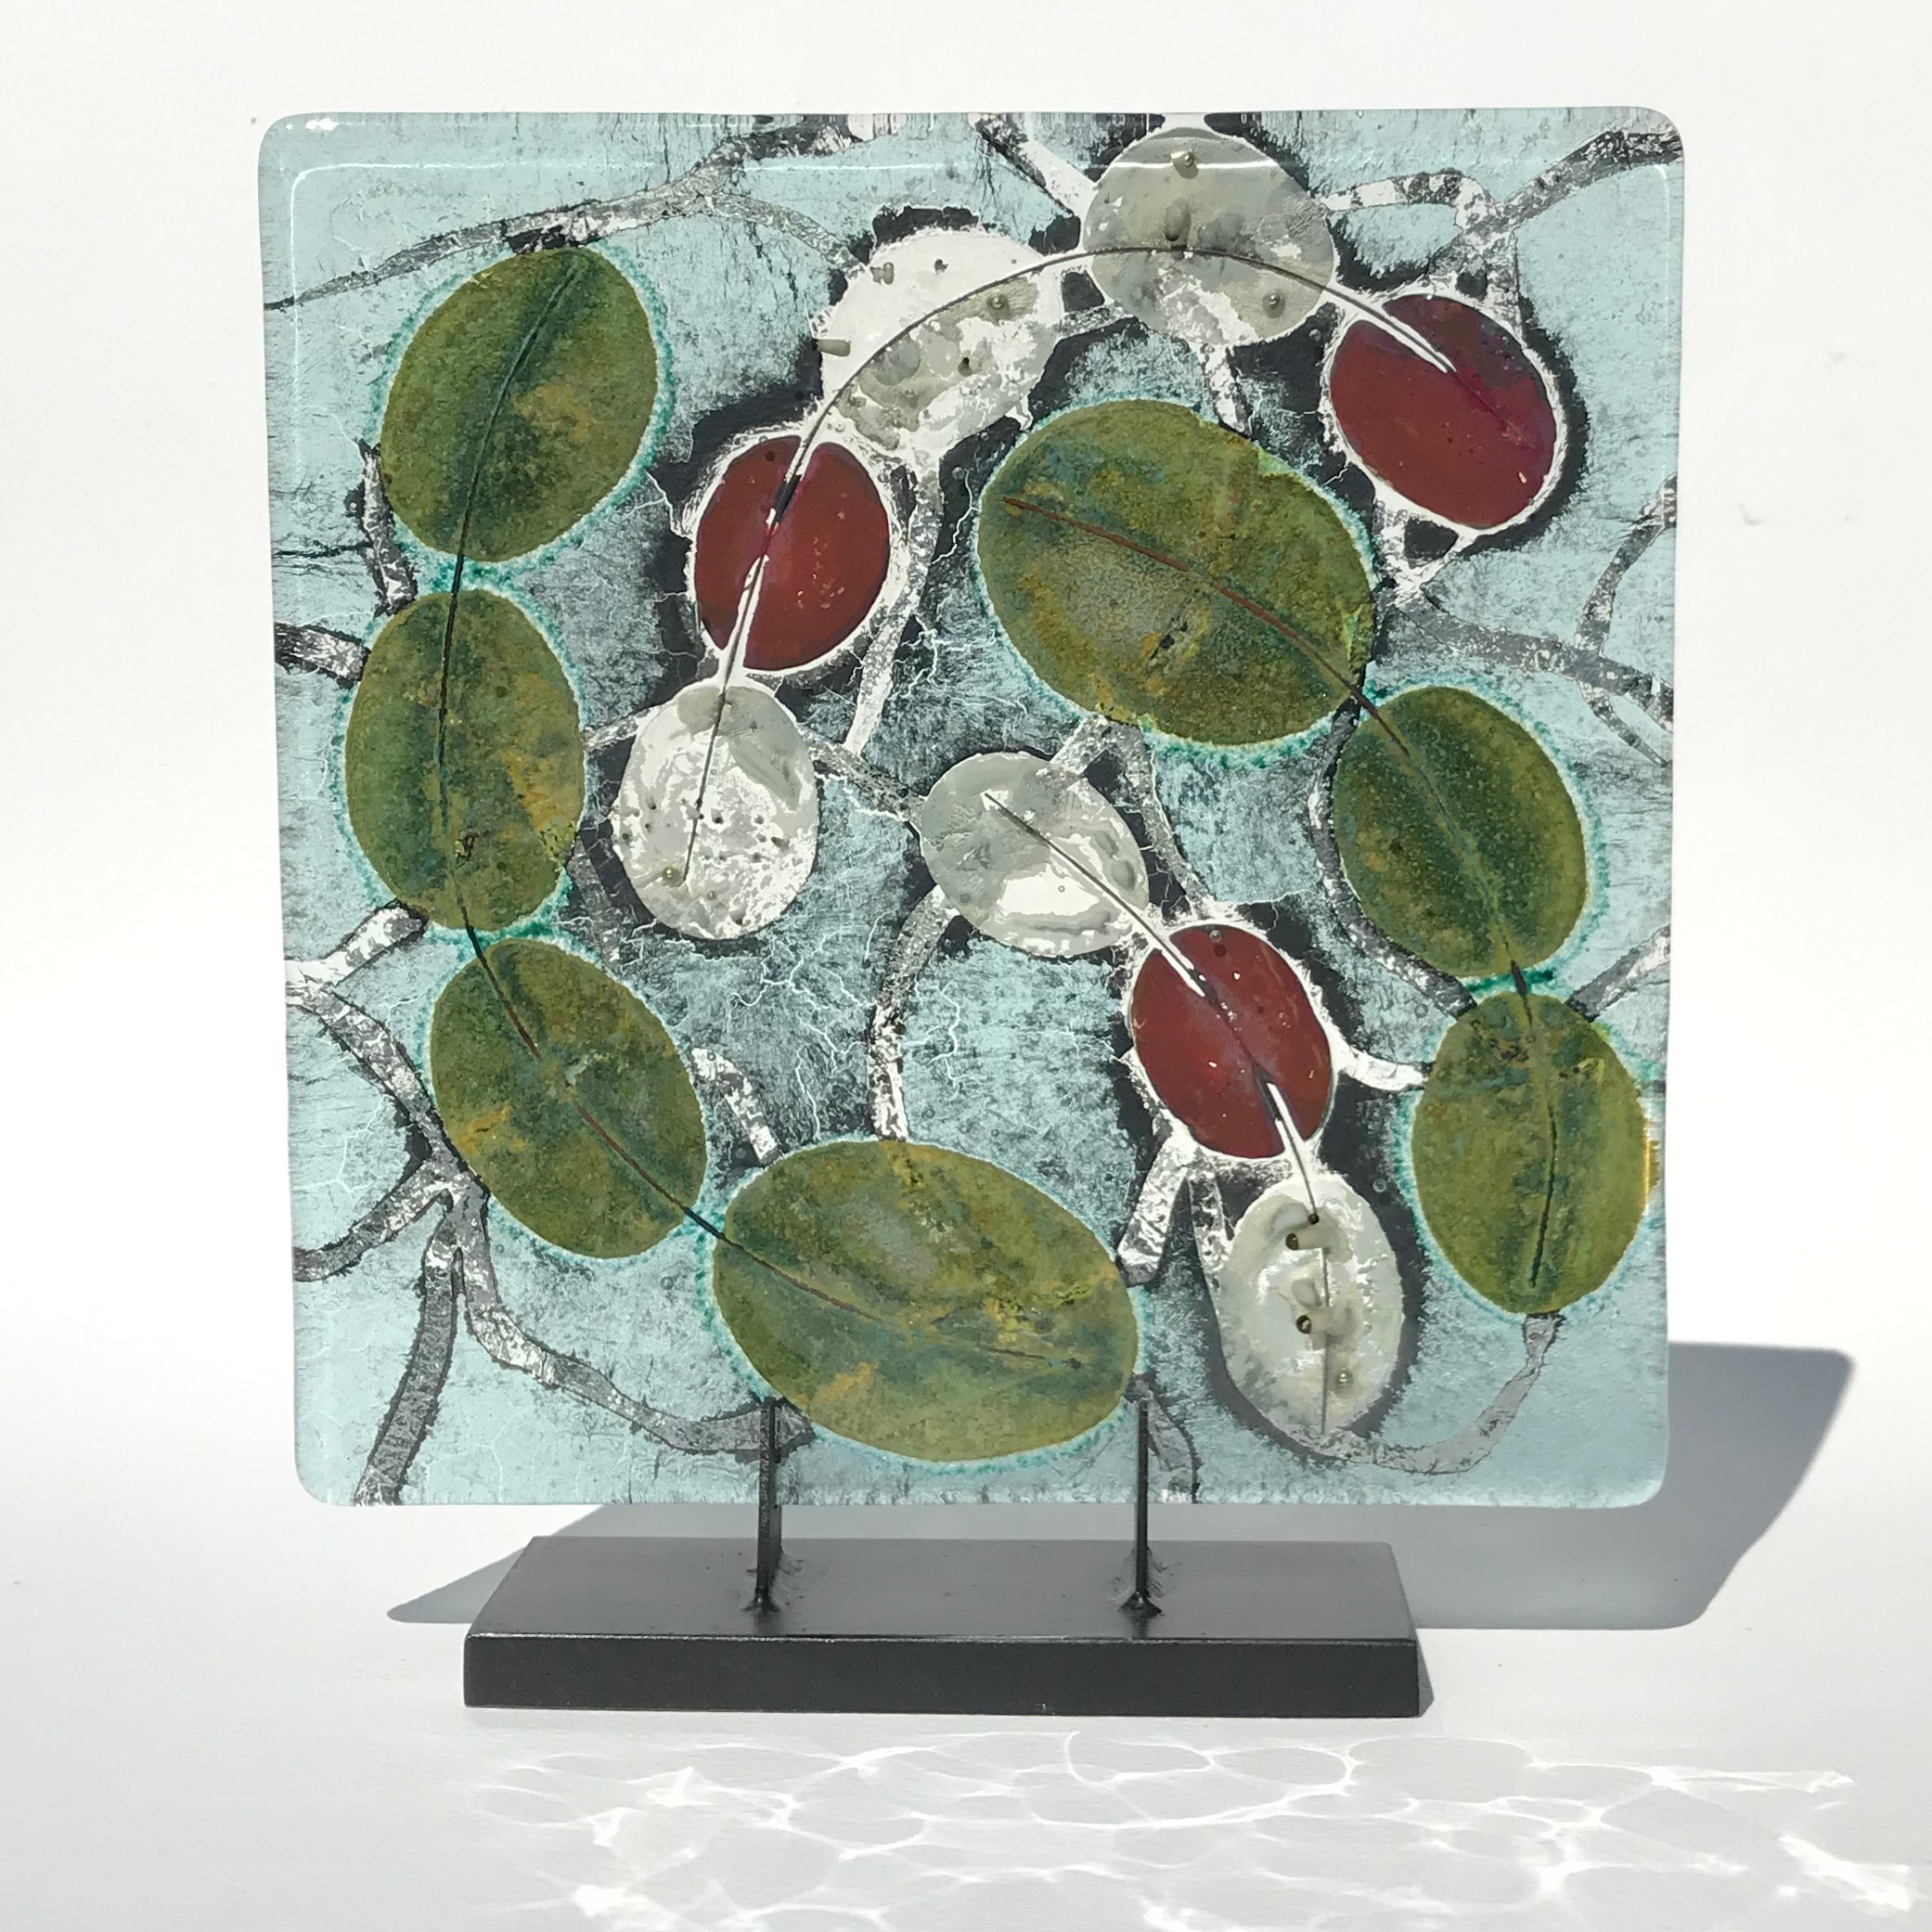 Cyanobacteria 2 on metal stand